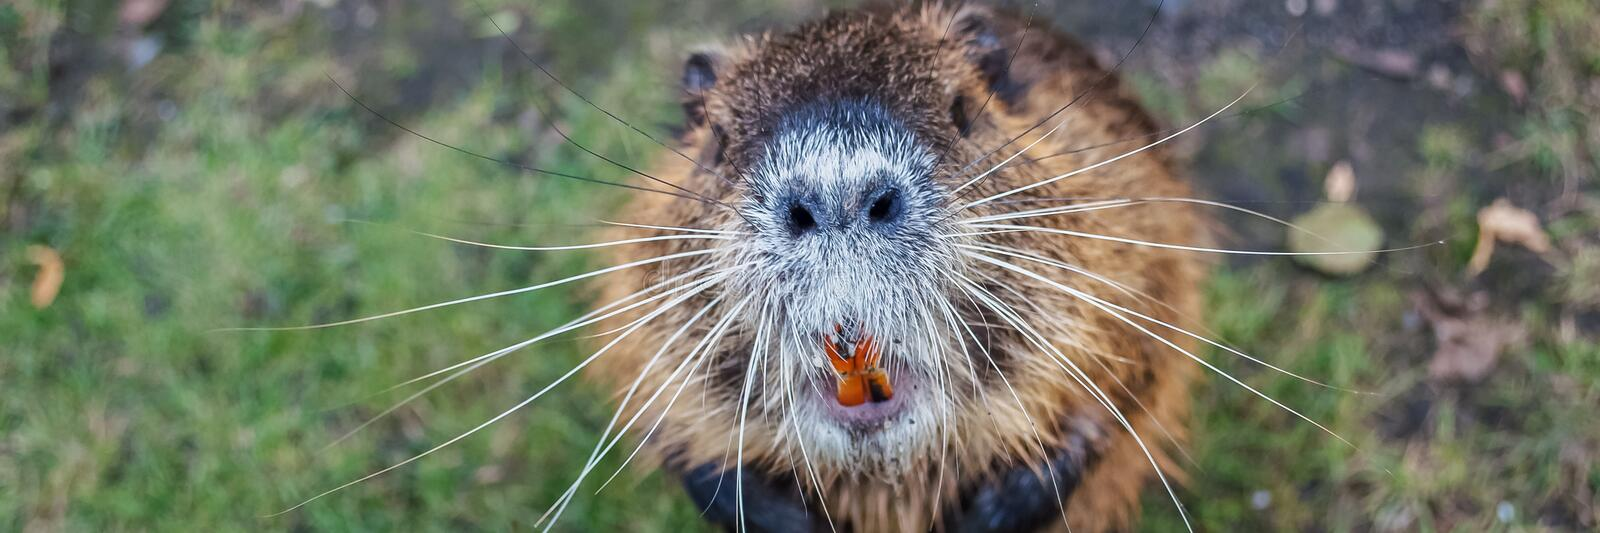 Nutria animal stands on its hind legs looking up royalty free stock photo